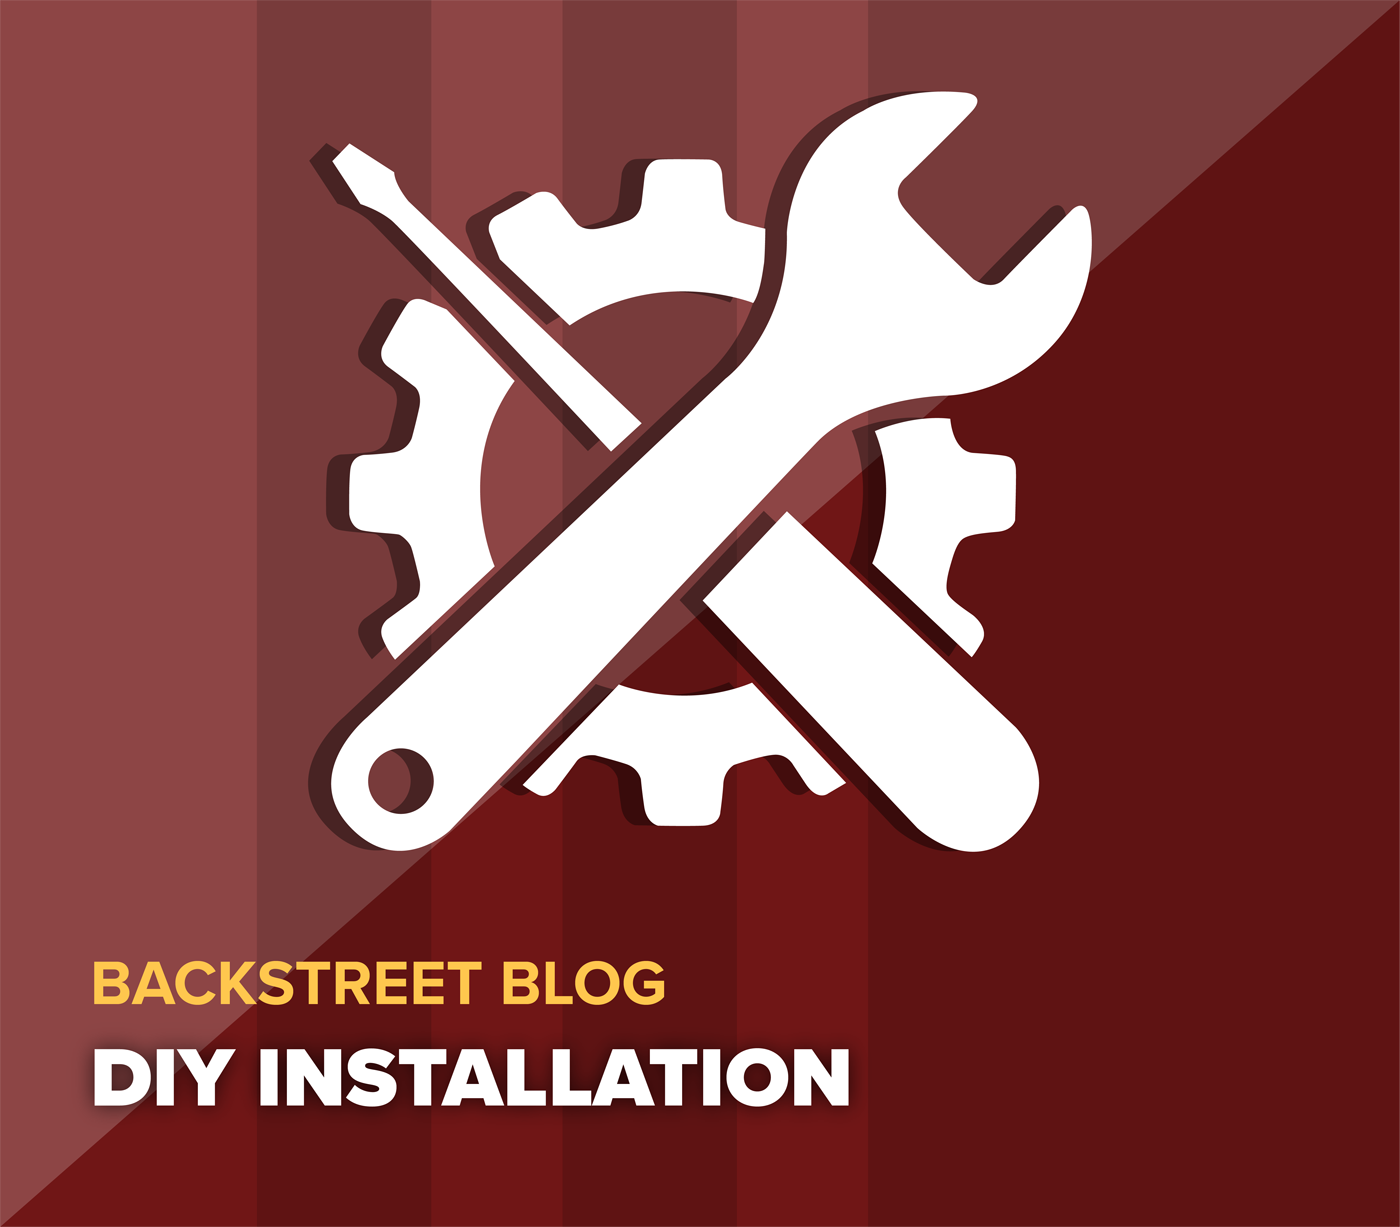 Should you install it...or have it installed?